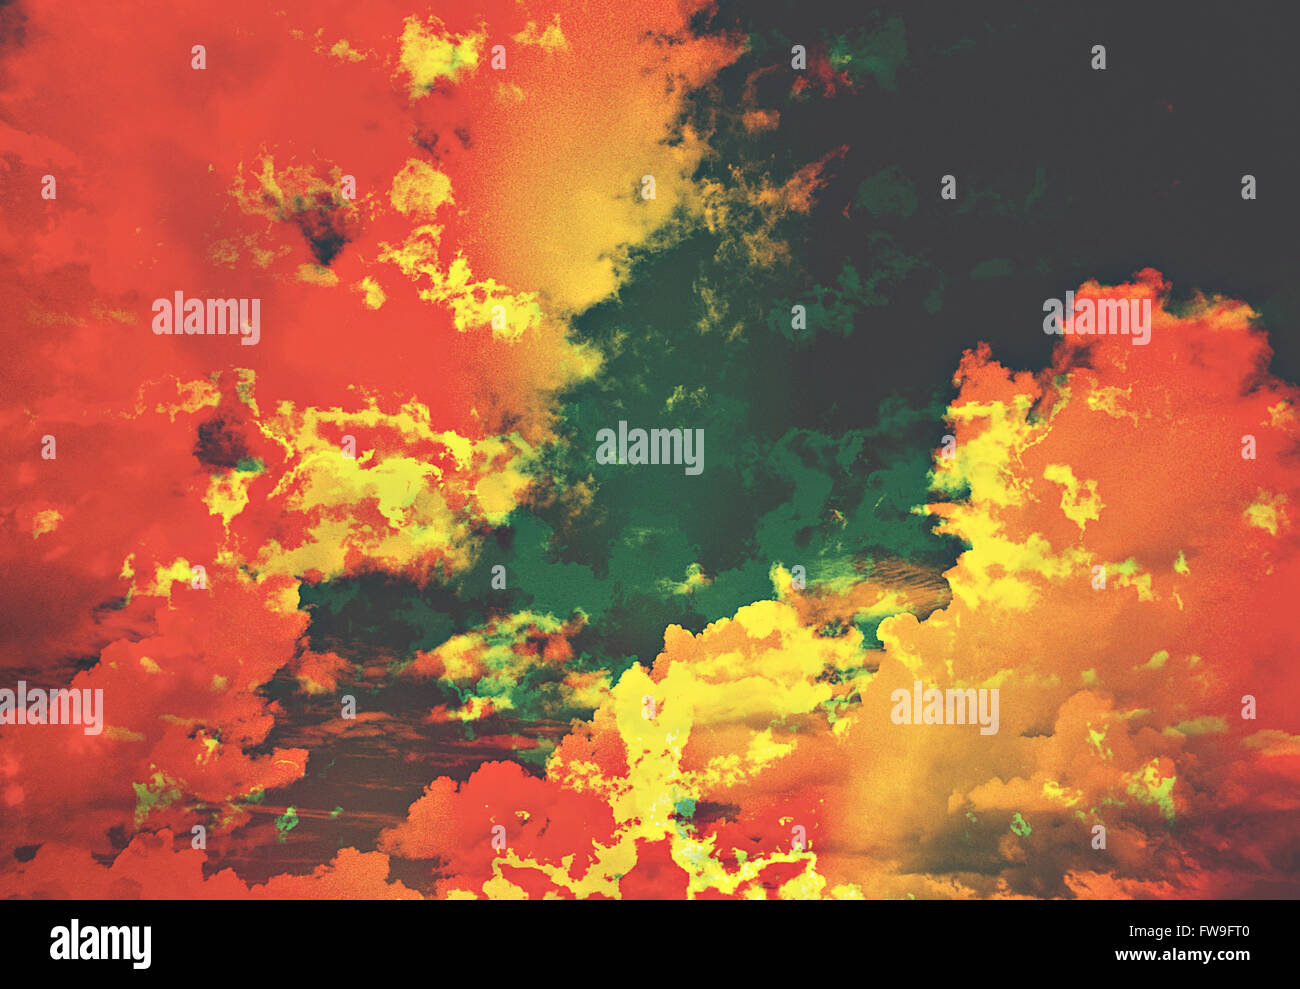 Modern abstract graphic design digital art concept créatif Photo Stock